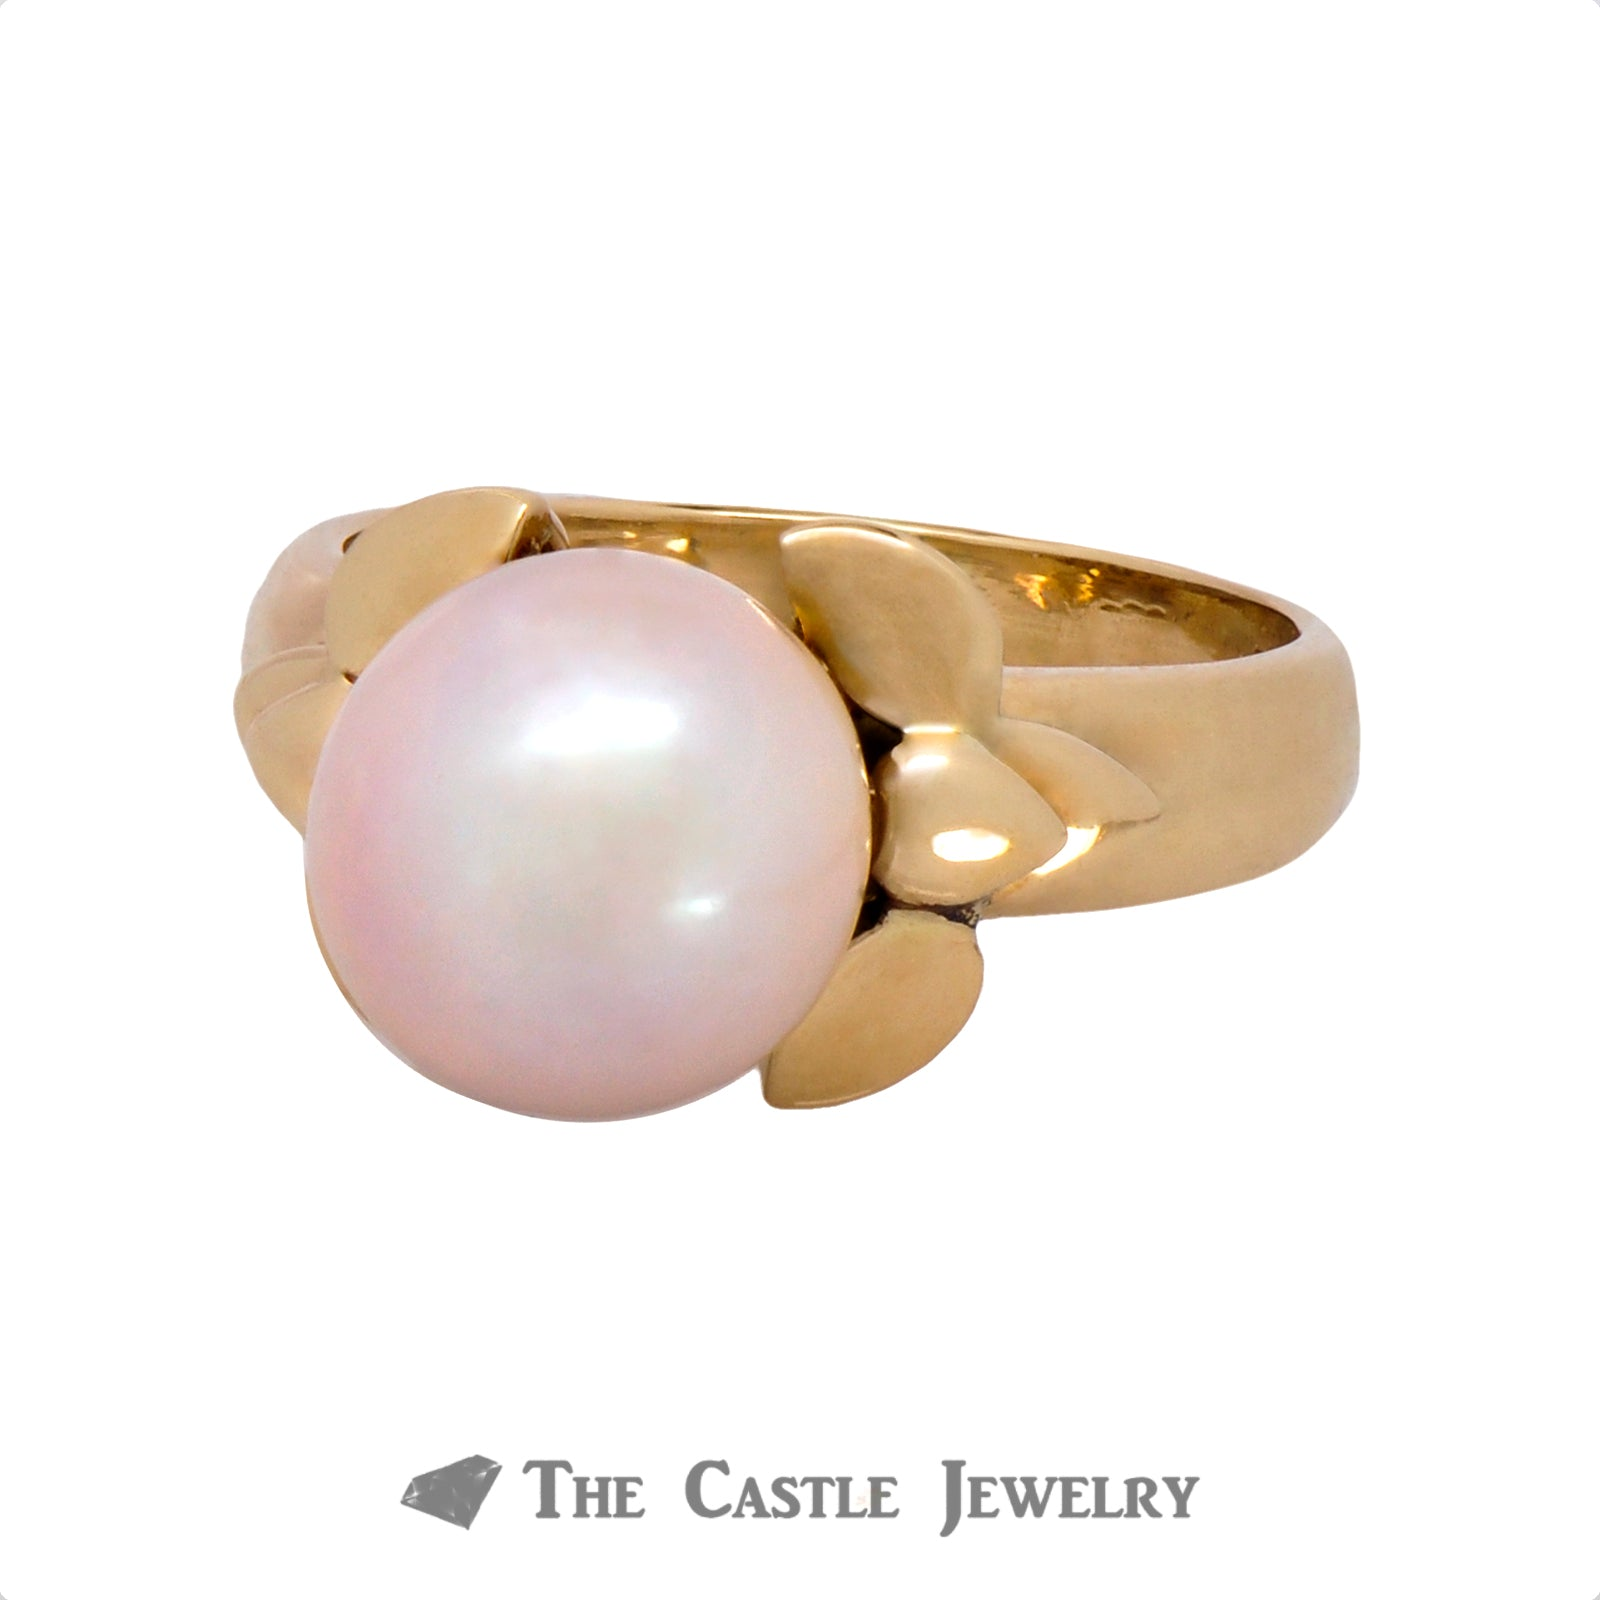 Pearl Ring with Fancy Bow Design Sides in 14K Yellow Gold-2